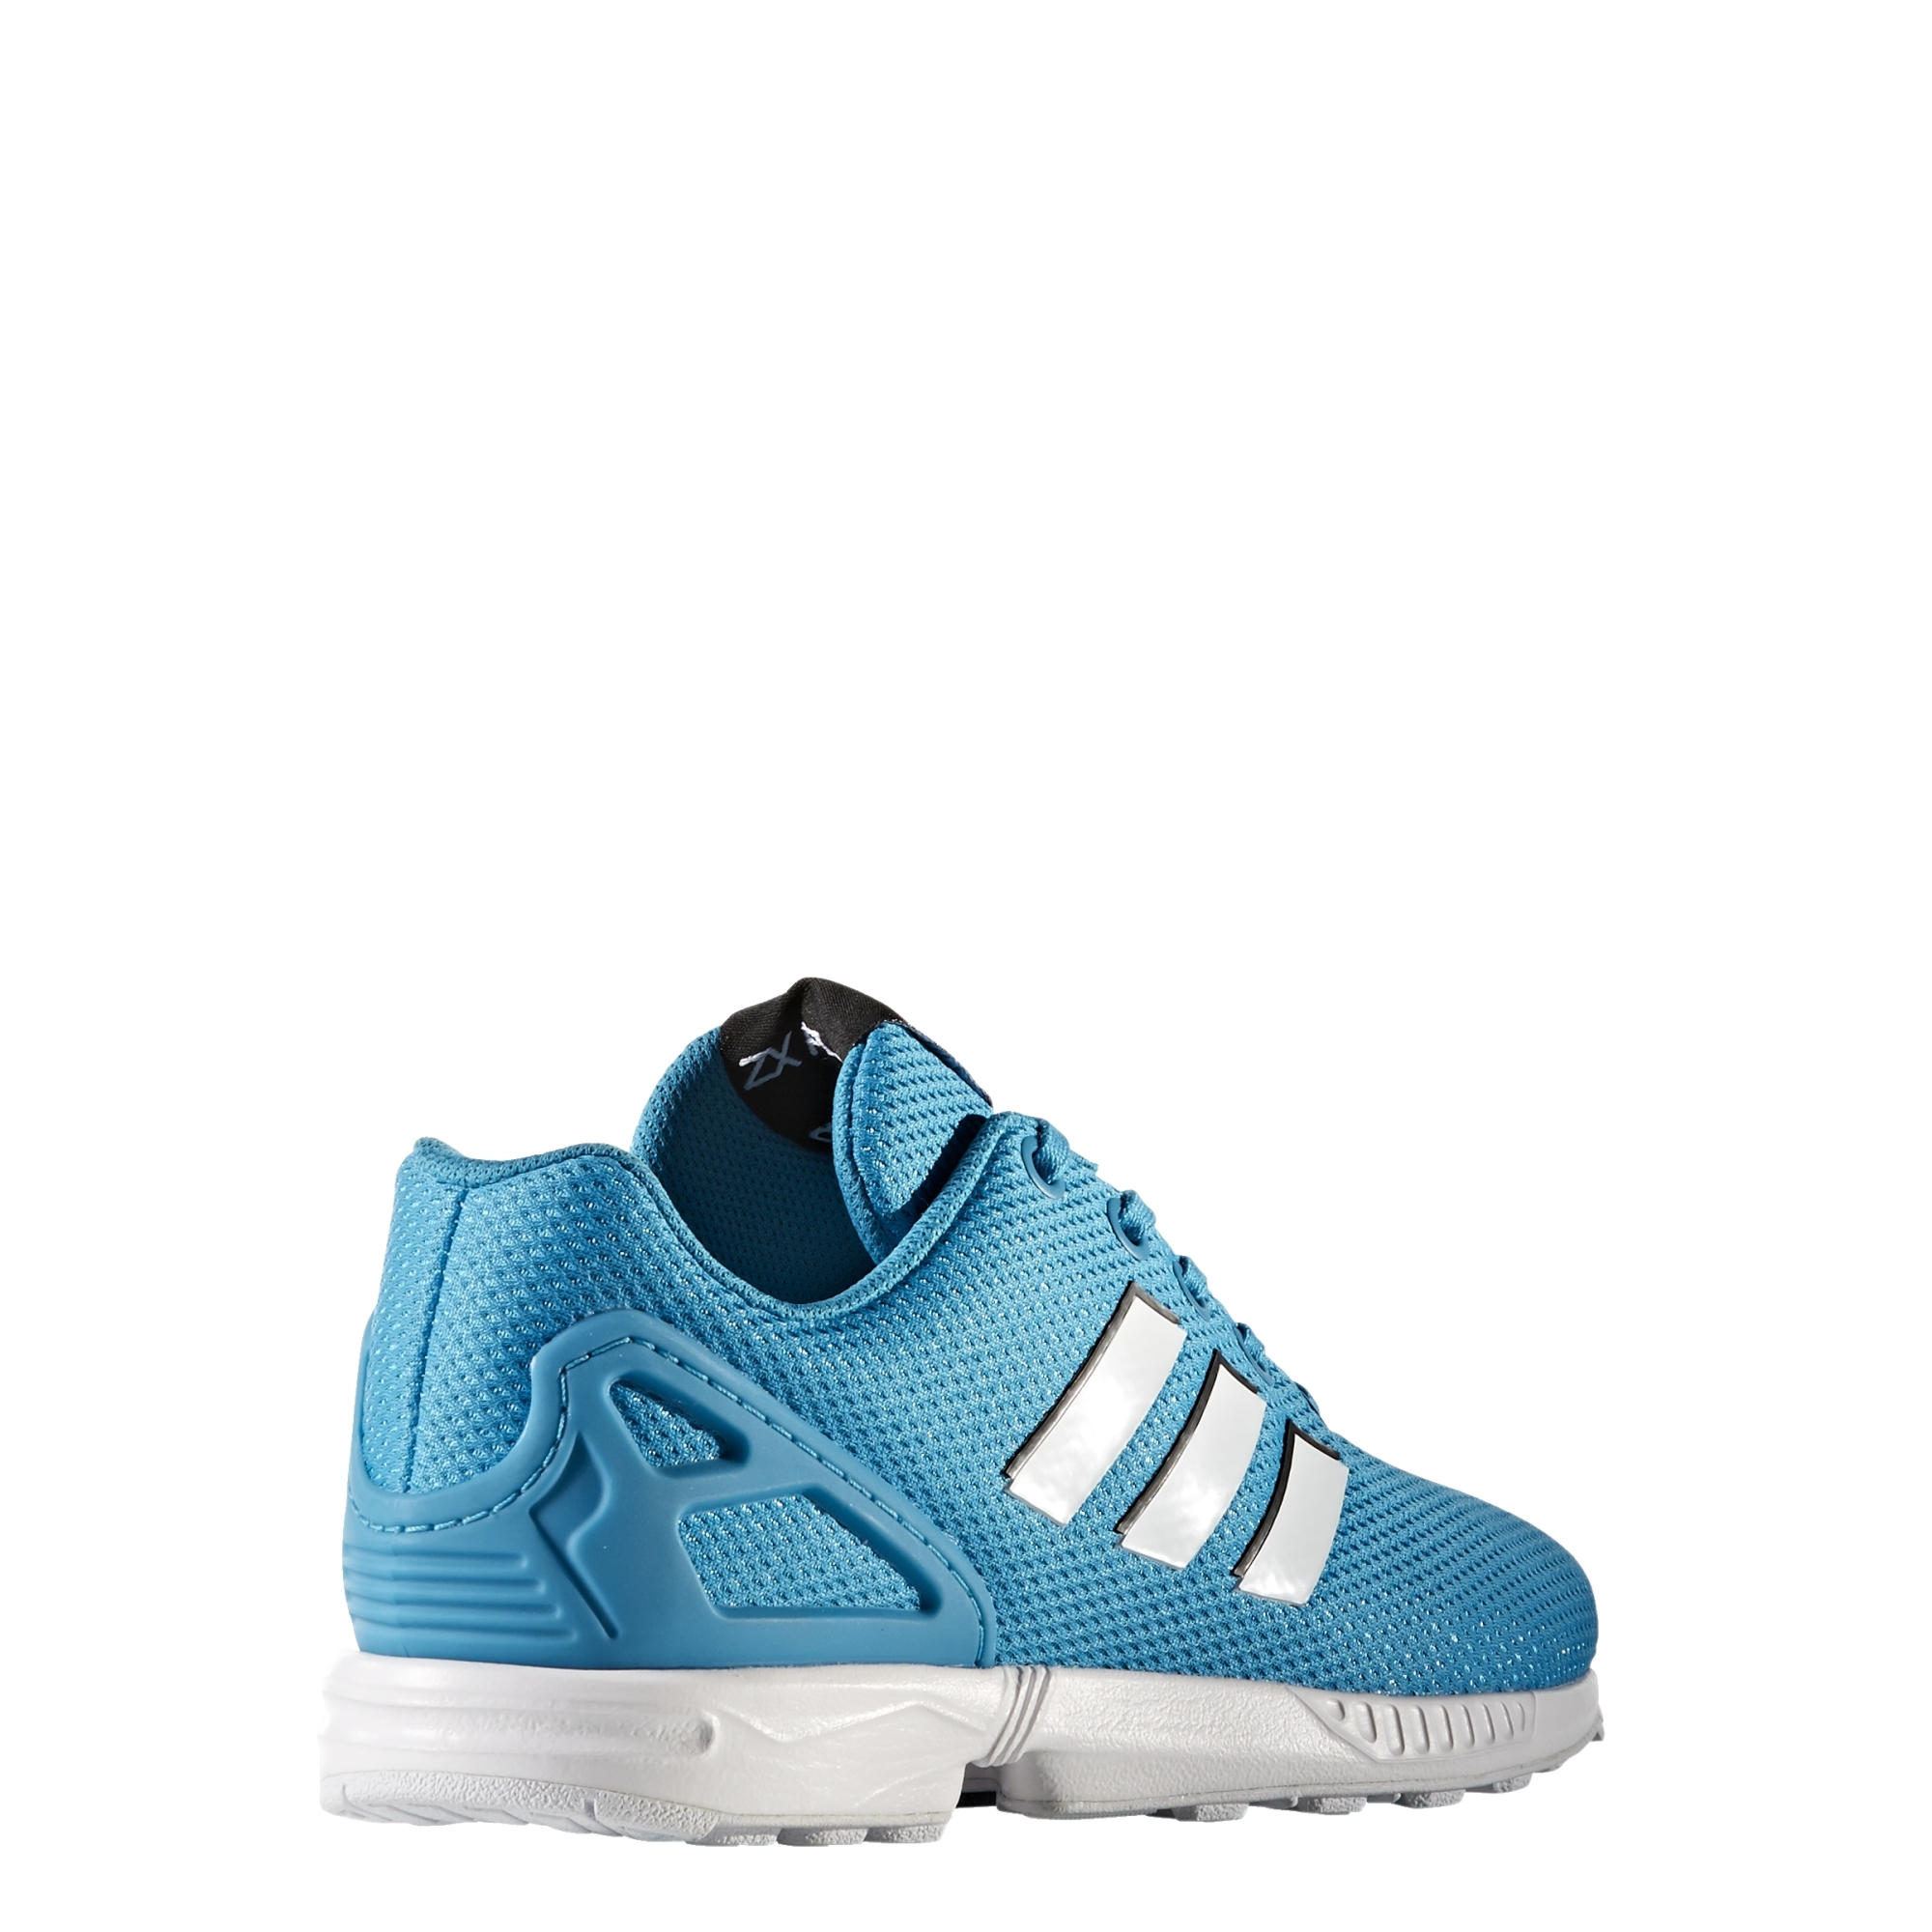 adidas Zx Flux BY9825